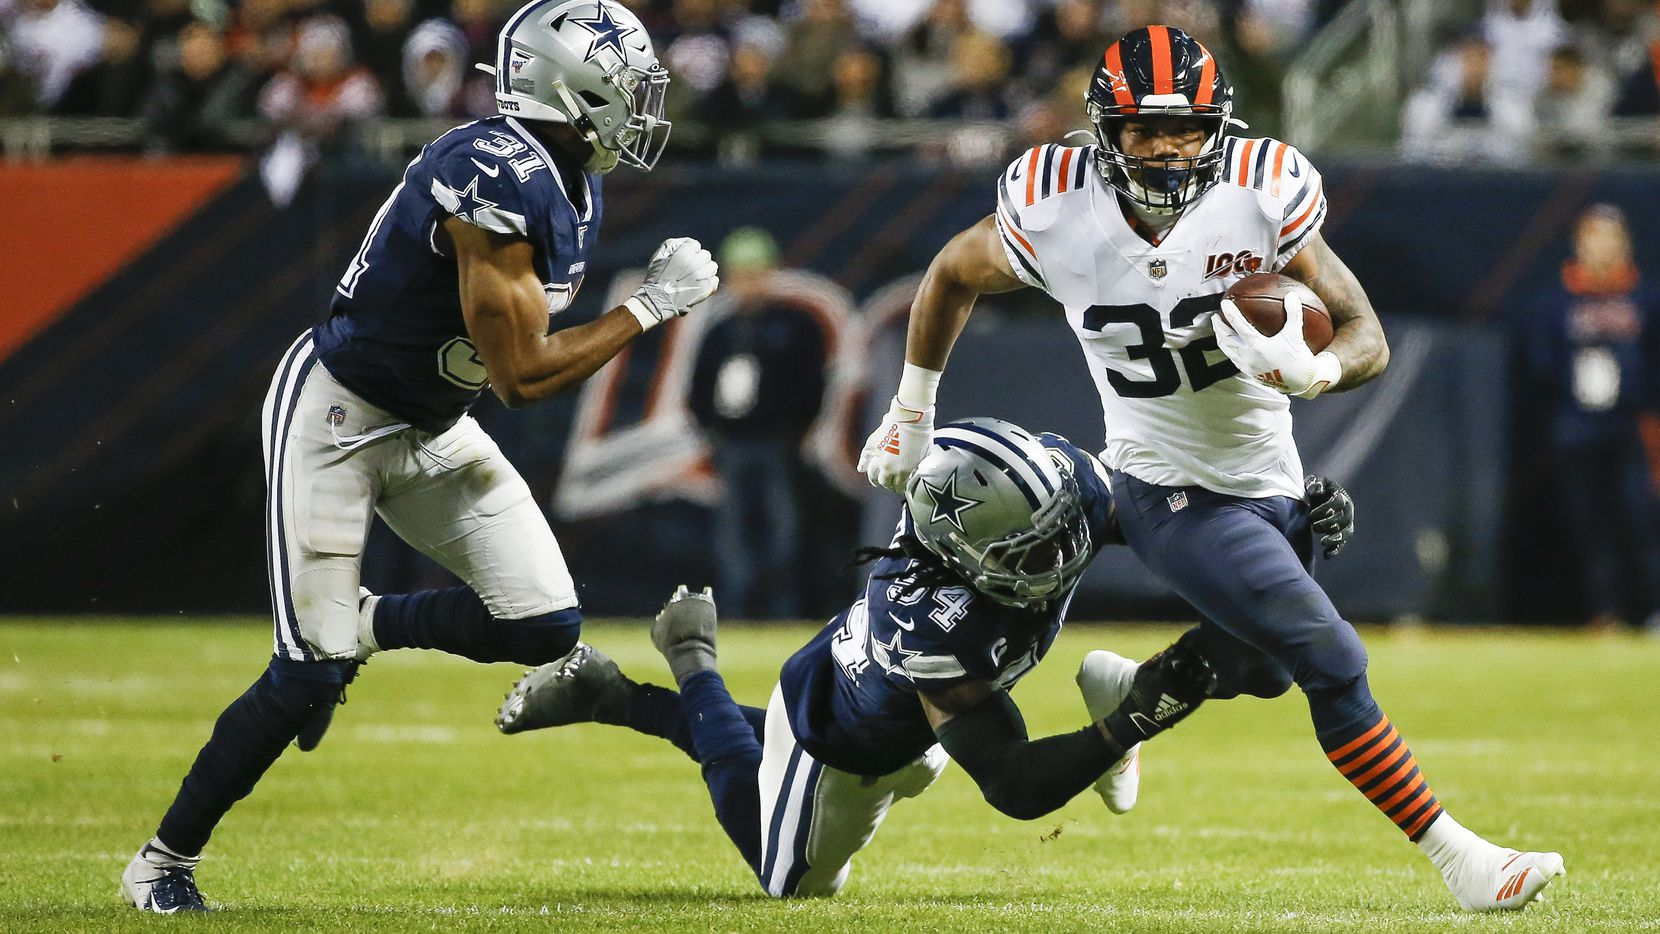 Dallas Cowboys middle linebacker Jaylon Smith (54) and cornerback Byron Jones (31) work to stop Chicago Bears running back David Montgomery (32) during the first half a NFL matchup between the Dallas Cowboys and the Chicago Bears on Thursday, Dec. 5, 2019, at Soldier Field in Chicago. (Ryan Michalesko/The Dallas Morning News)